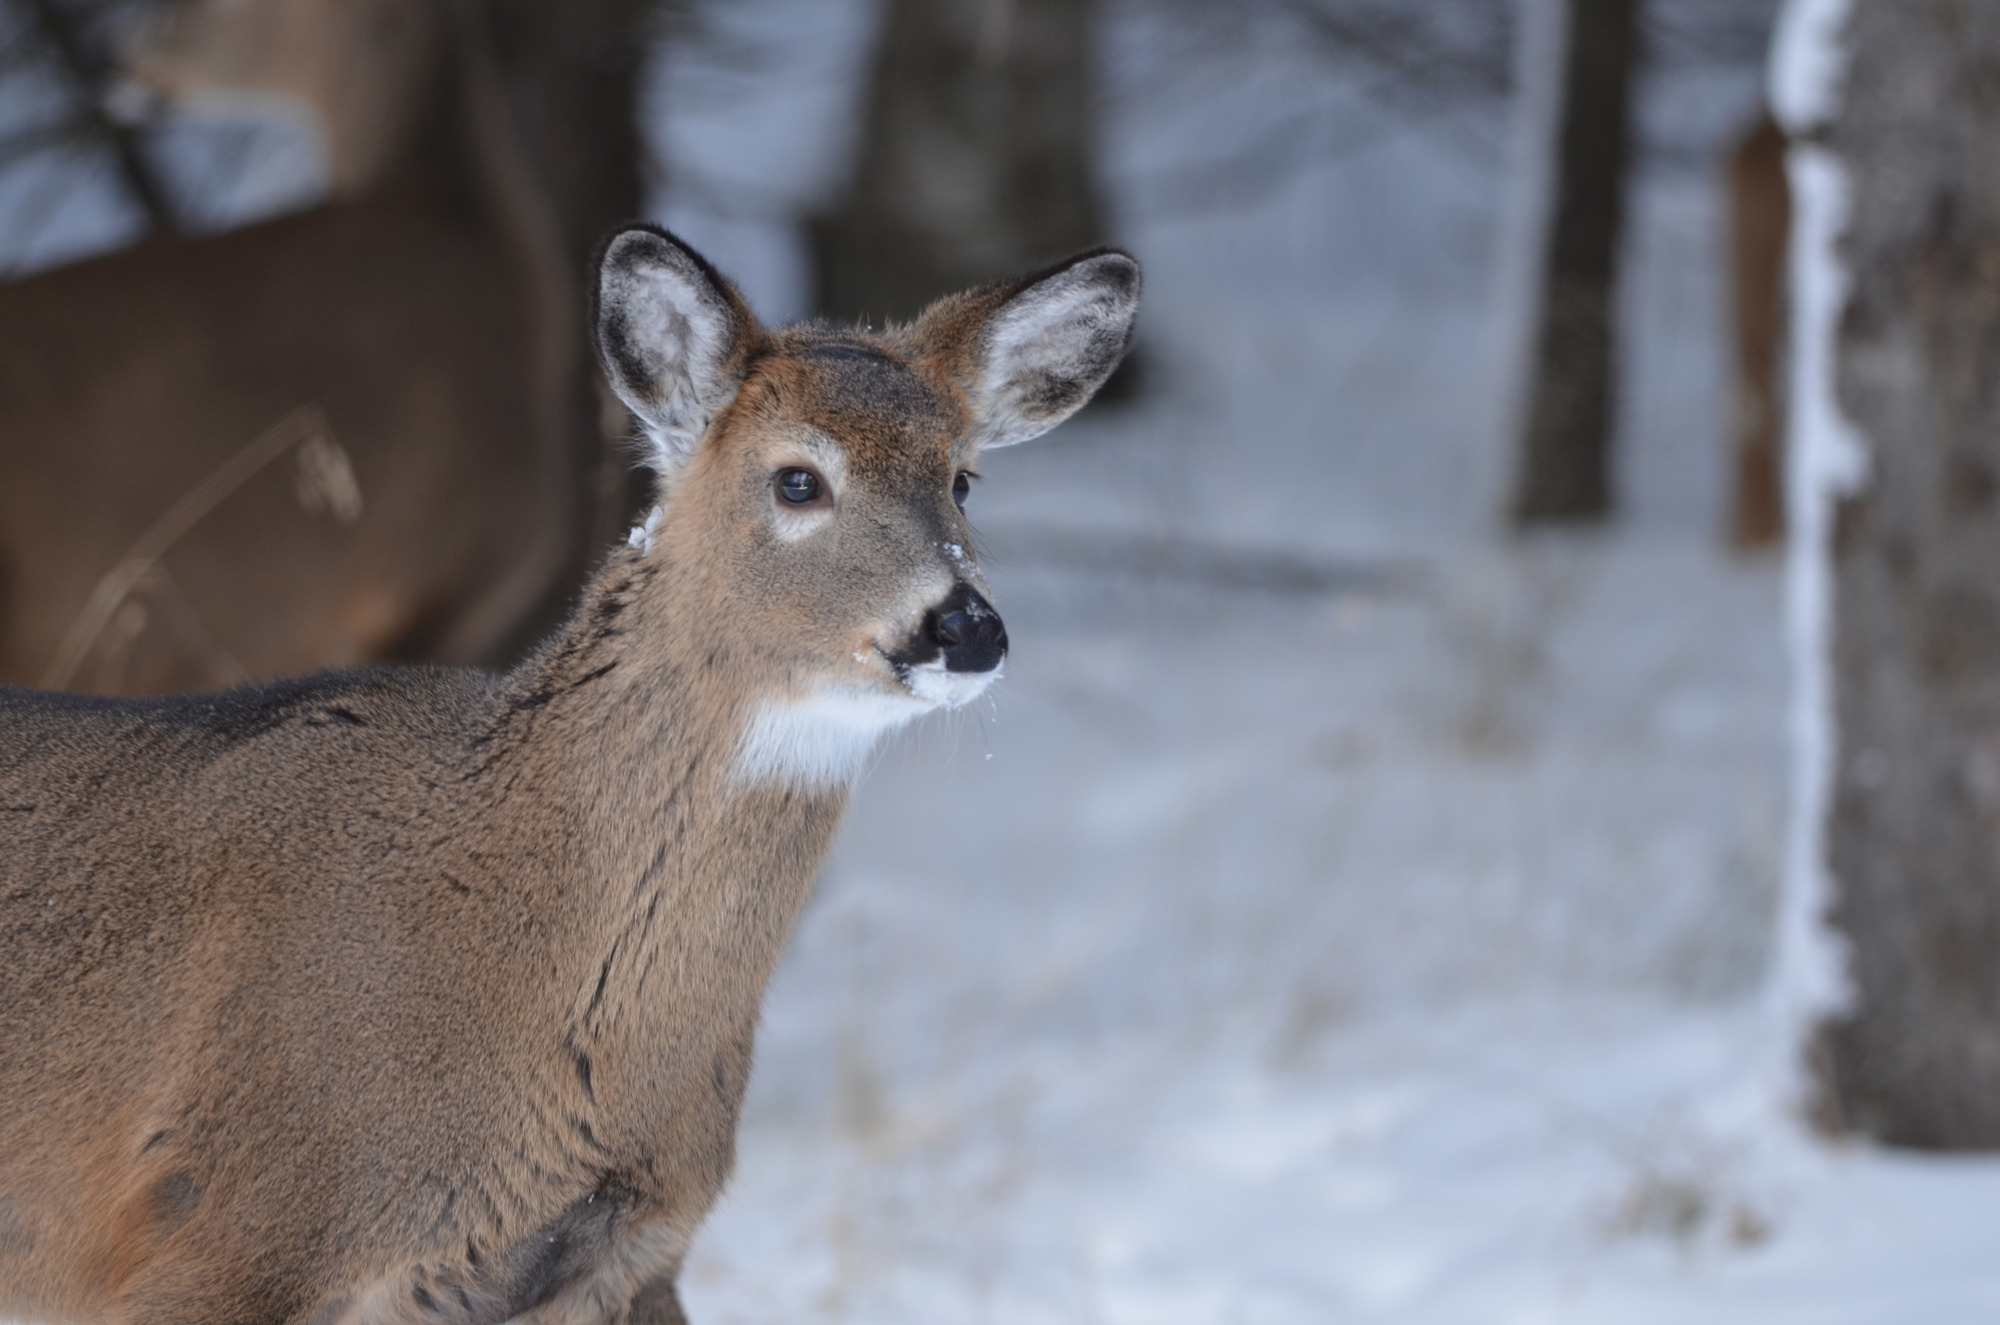 U.P. Deer Tests Positive For Chronic Wasting Disease